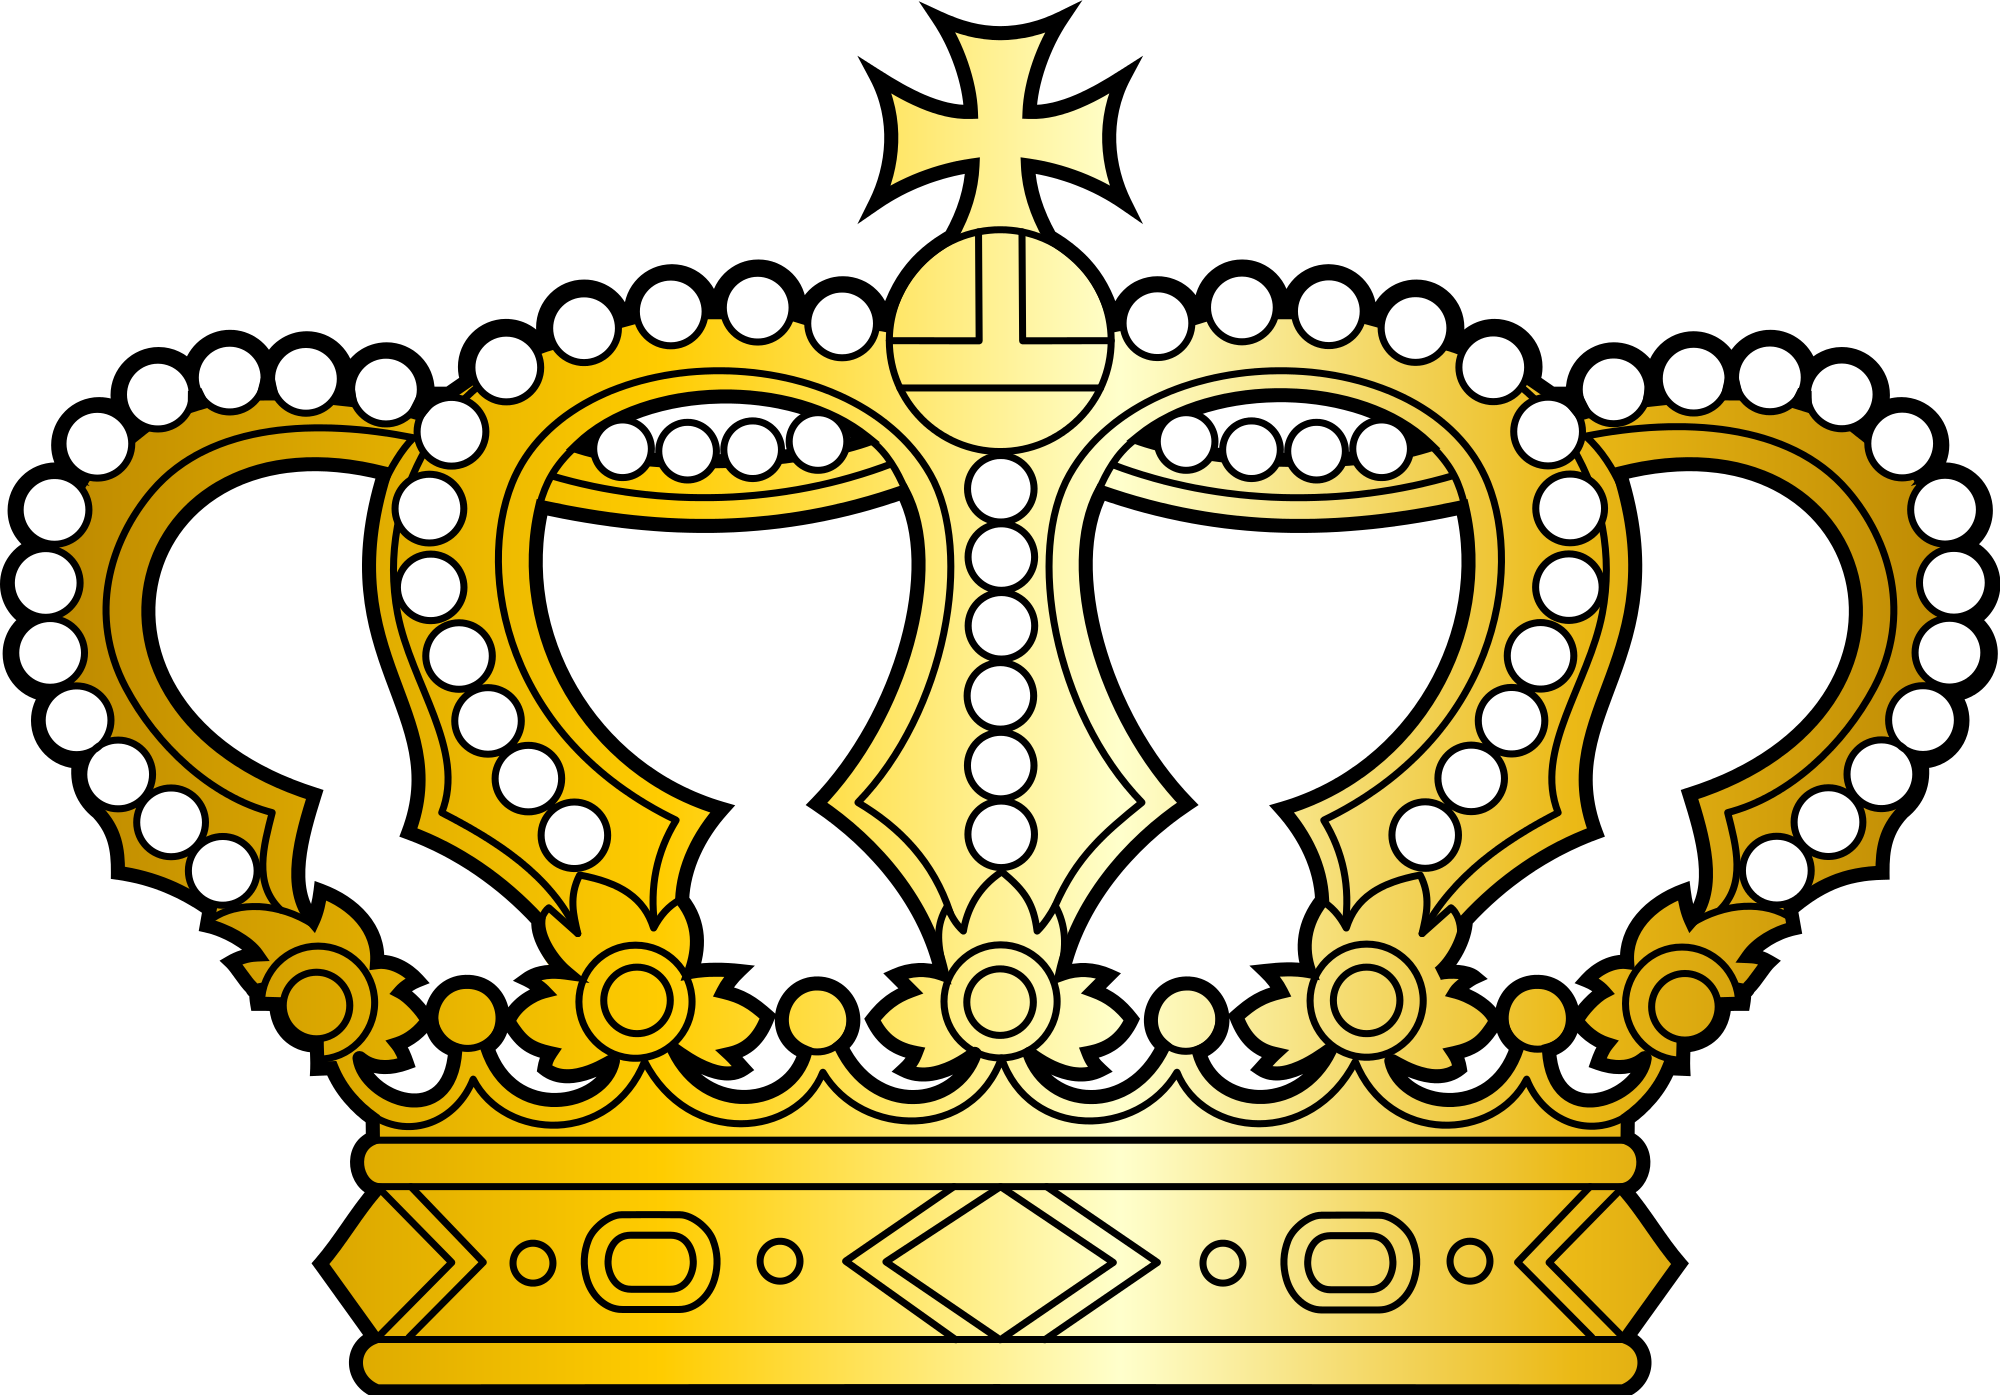 Crown b and w clipart clipart freeuse File:Georgian golden crown with pearls and cross.svg - Wikimedia Commons clipart freeuse